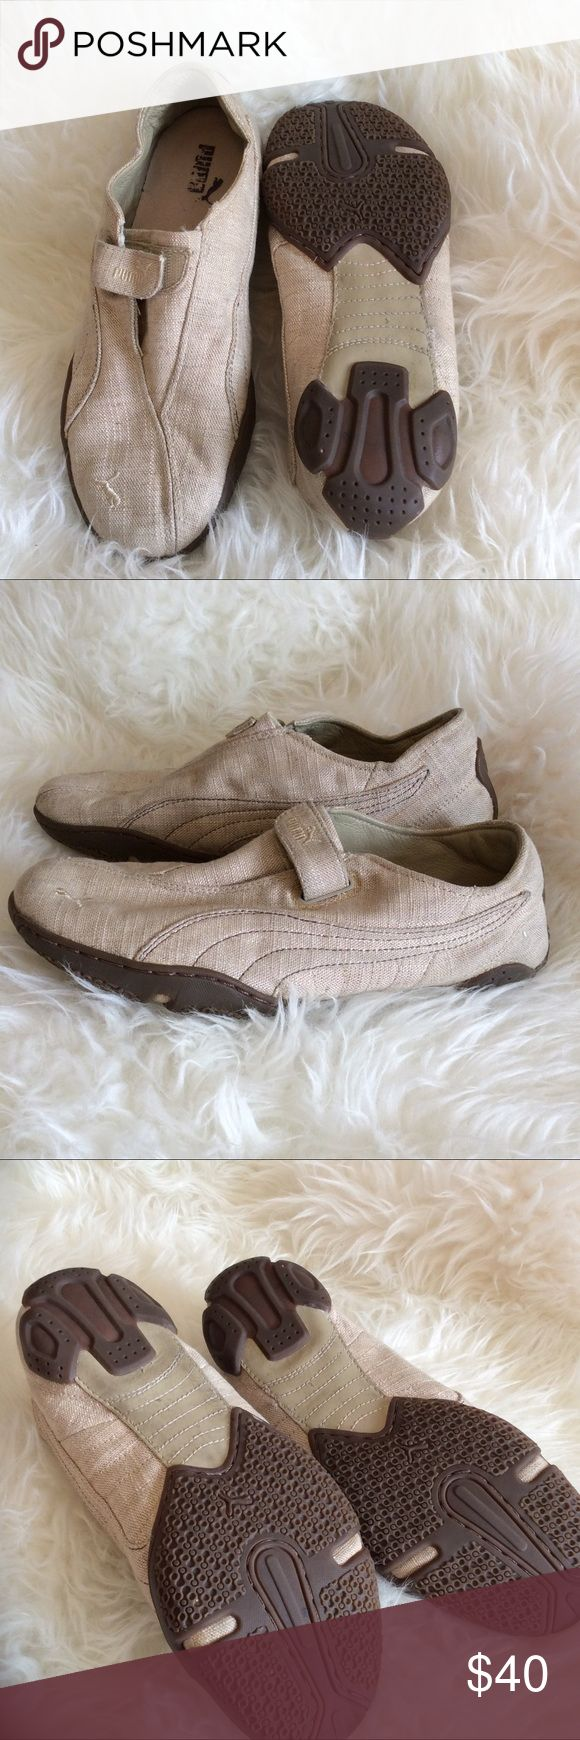 Women's Sz 10 Pumas linen velcro hipster Fawking awesome size 10 Puma (mostro ?) linen Velcro shoes. Very GUC stylish and comfy hipster cozy casual Puma Shoes Athletic Shoes